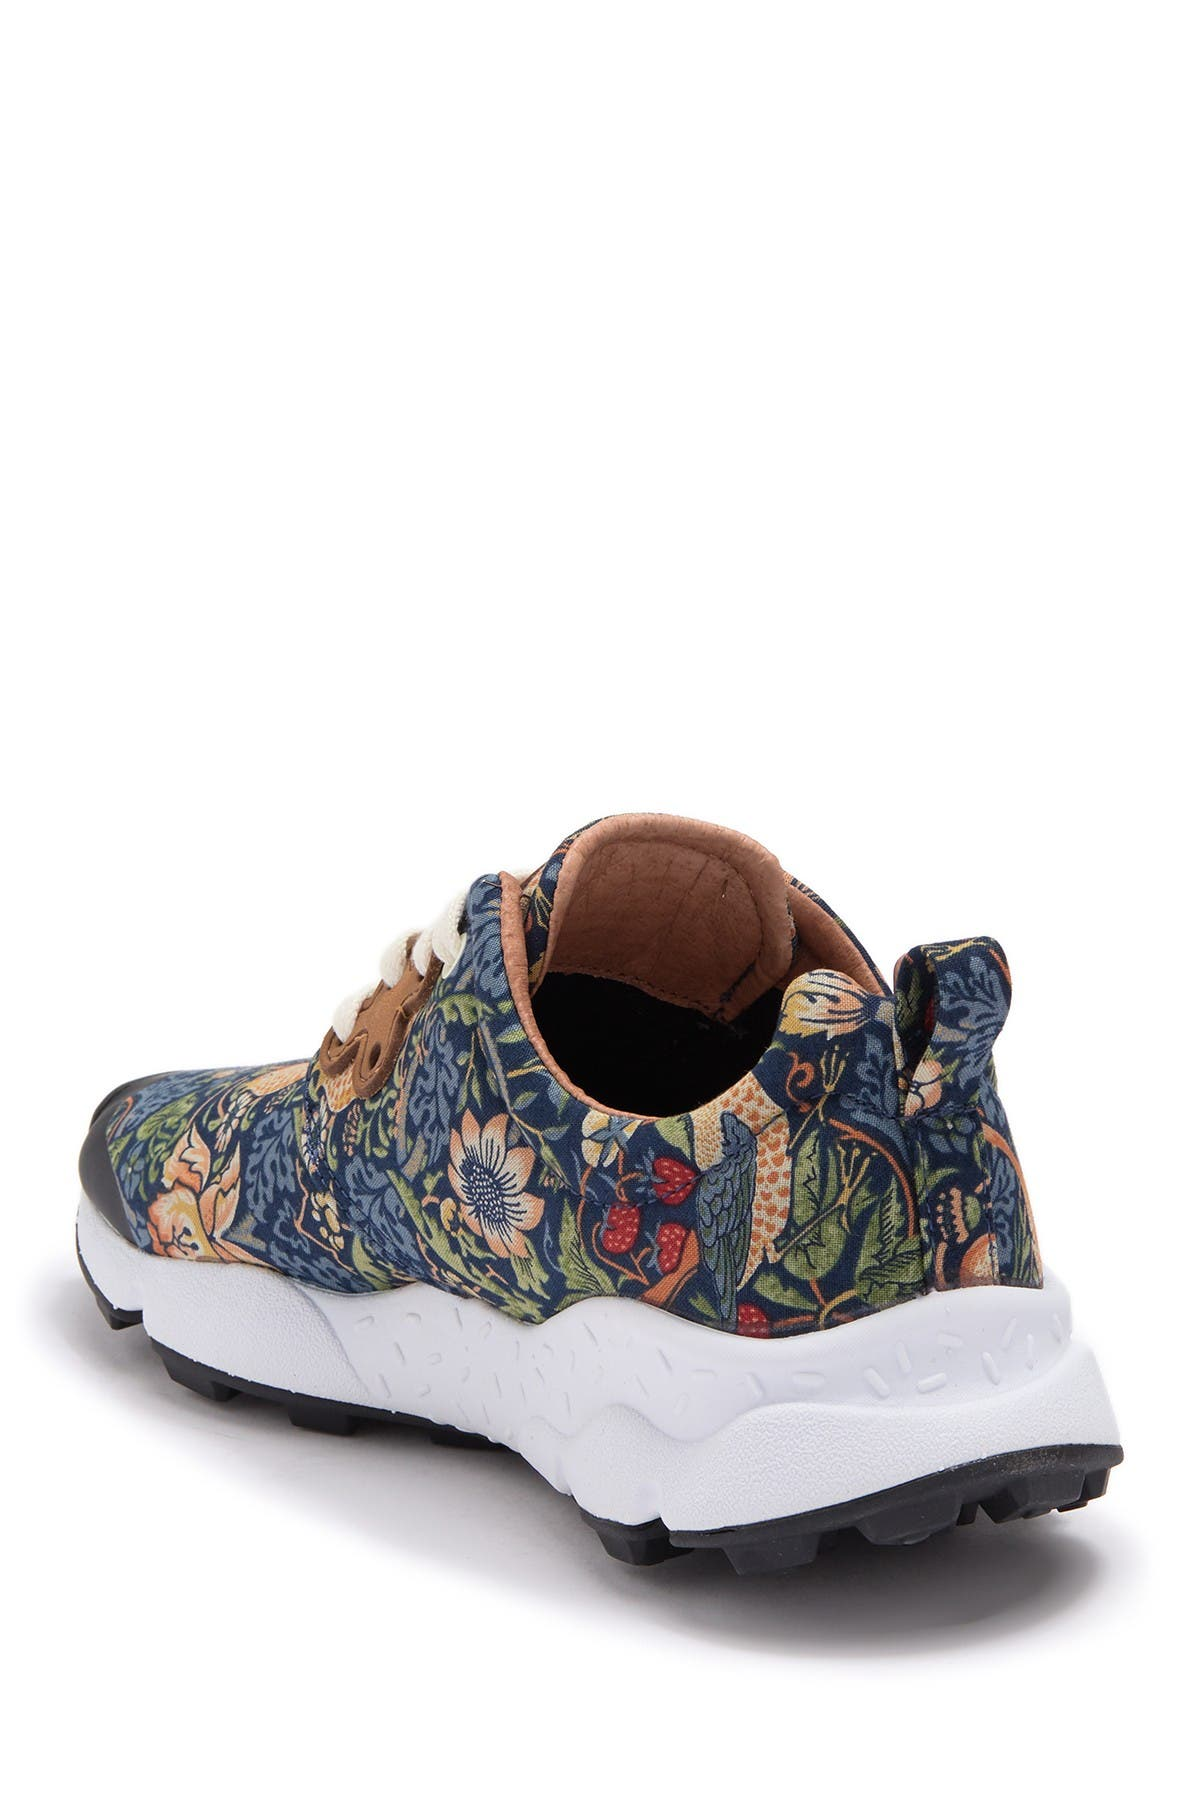 Image of Flower Mountain Pampas Sneaker